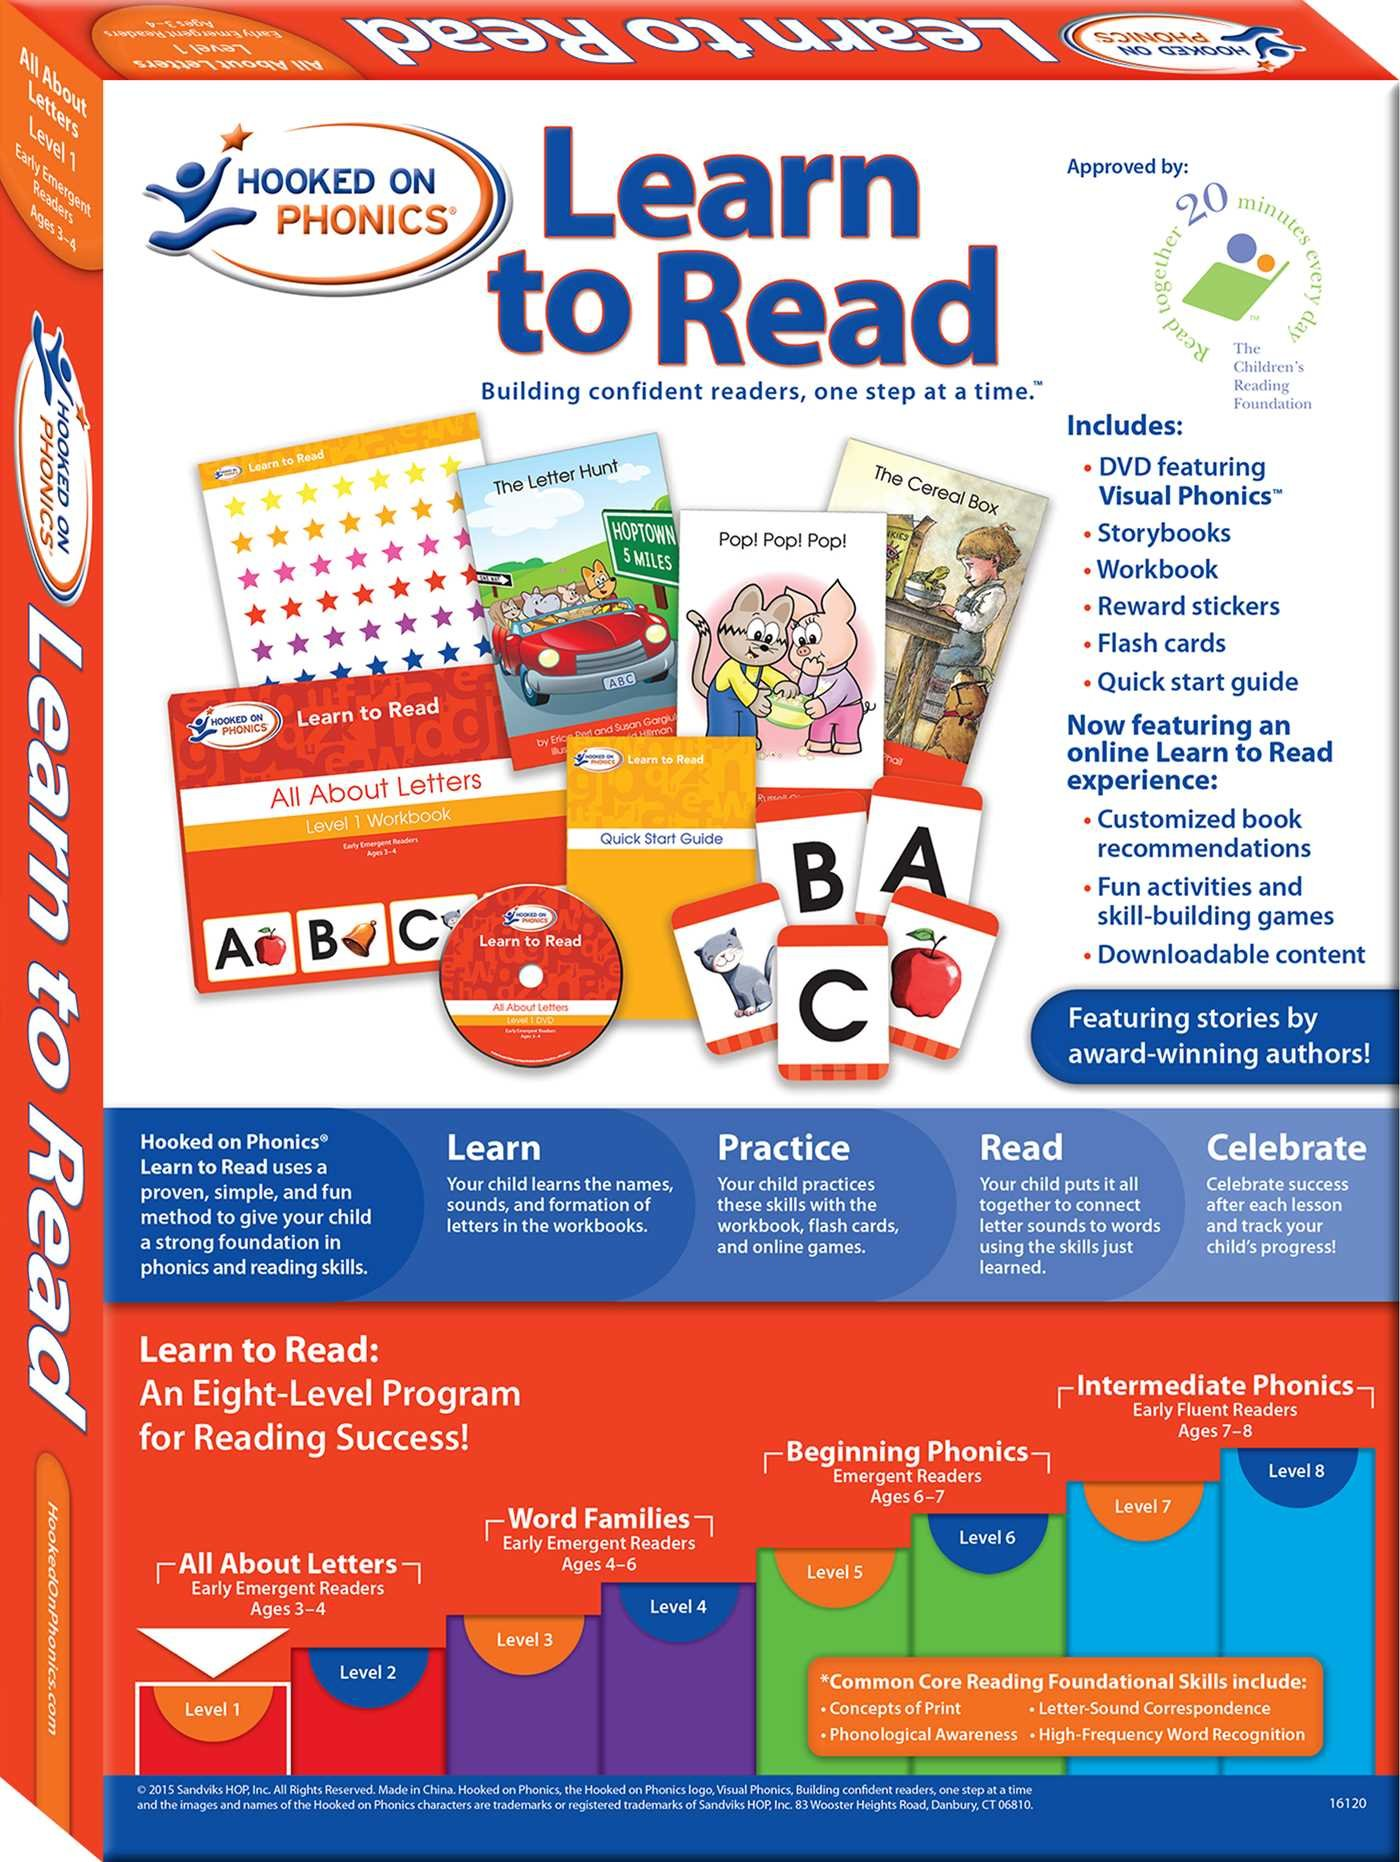 Hooked on Phonics Learn to Read - Level 1: All About Letters (Early